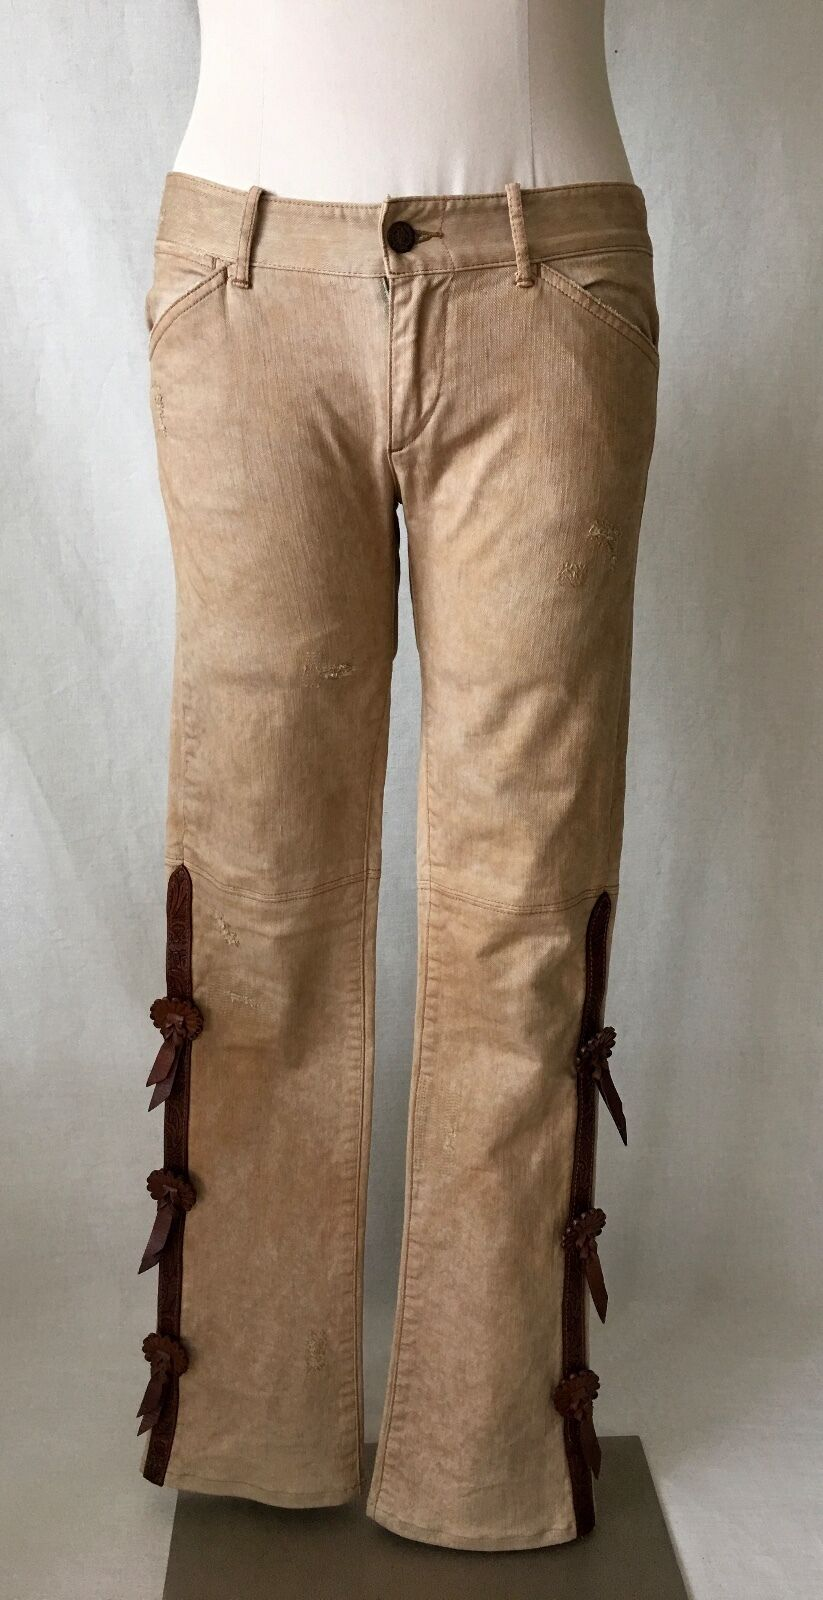 RALPH LAUREN VINTAG WESTERN PENTS with LEATHER pinkTTA EMBELLISHMET. RARE. SZ.27